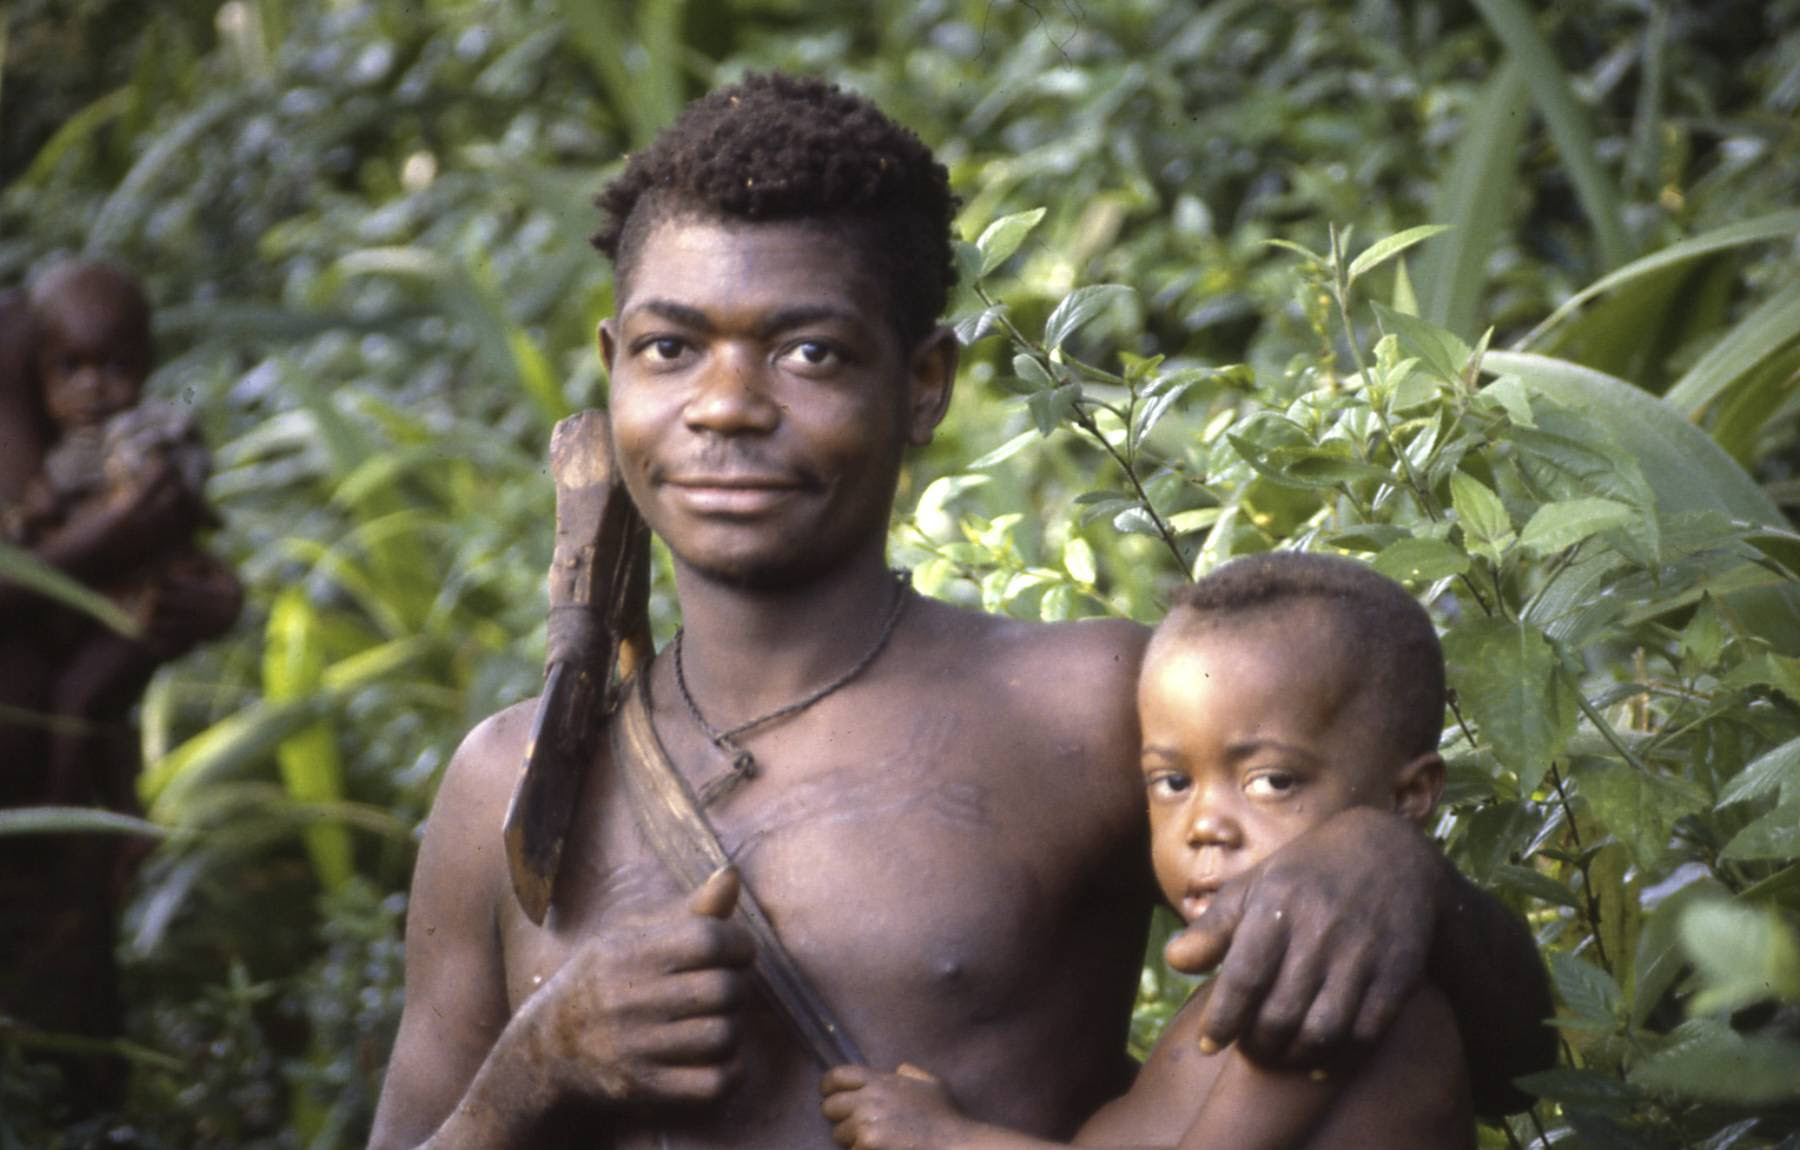 The Aka Pygmies Are Considered To Be Very First Inhabitants Of Central African Republic